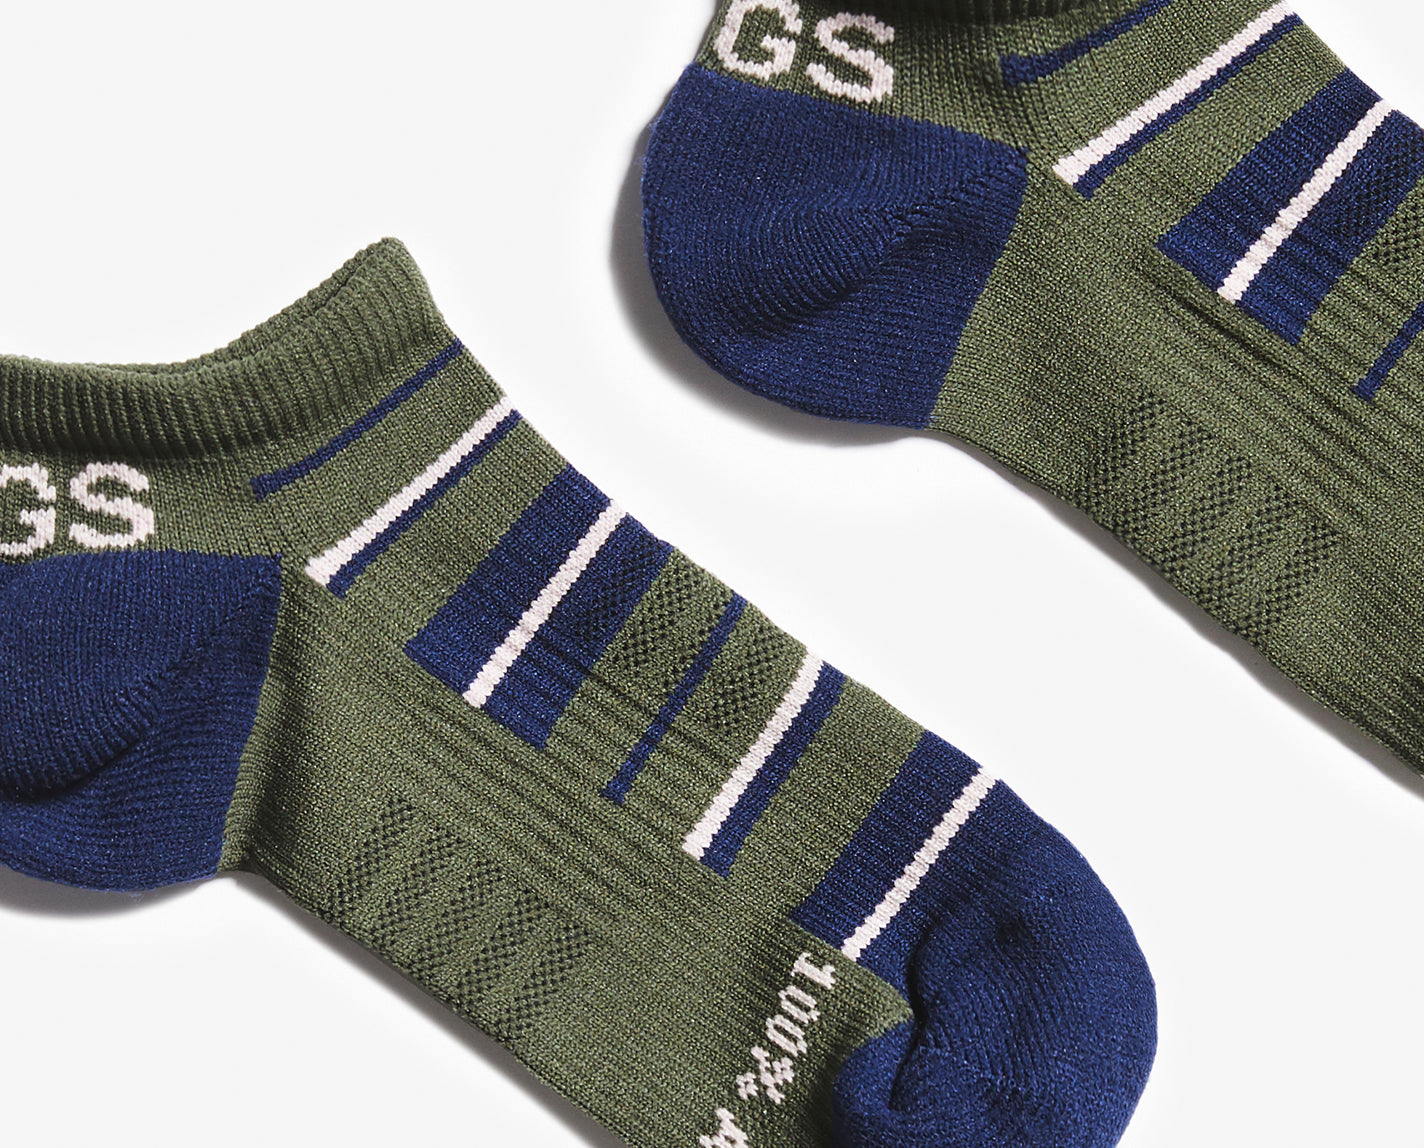 Don't mess with a classic. Our Olive Stripe 100% Awesome Ankle Socks are understated and match 99.9% of your FIGS. Bonus – they feature toe and heel padding, engineered arch support and our proprietary FIONdry moisture — and they're breathable and ridiculously soft